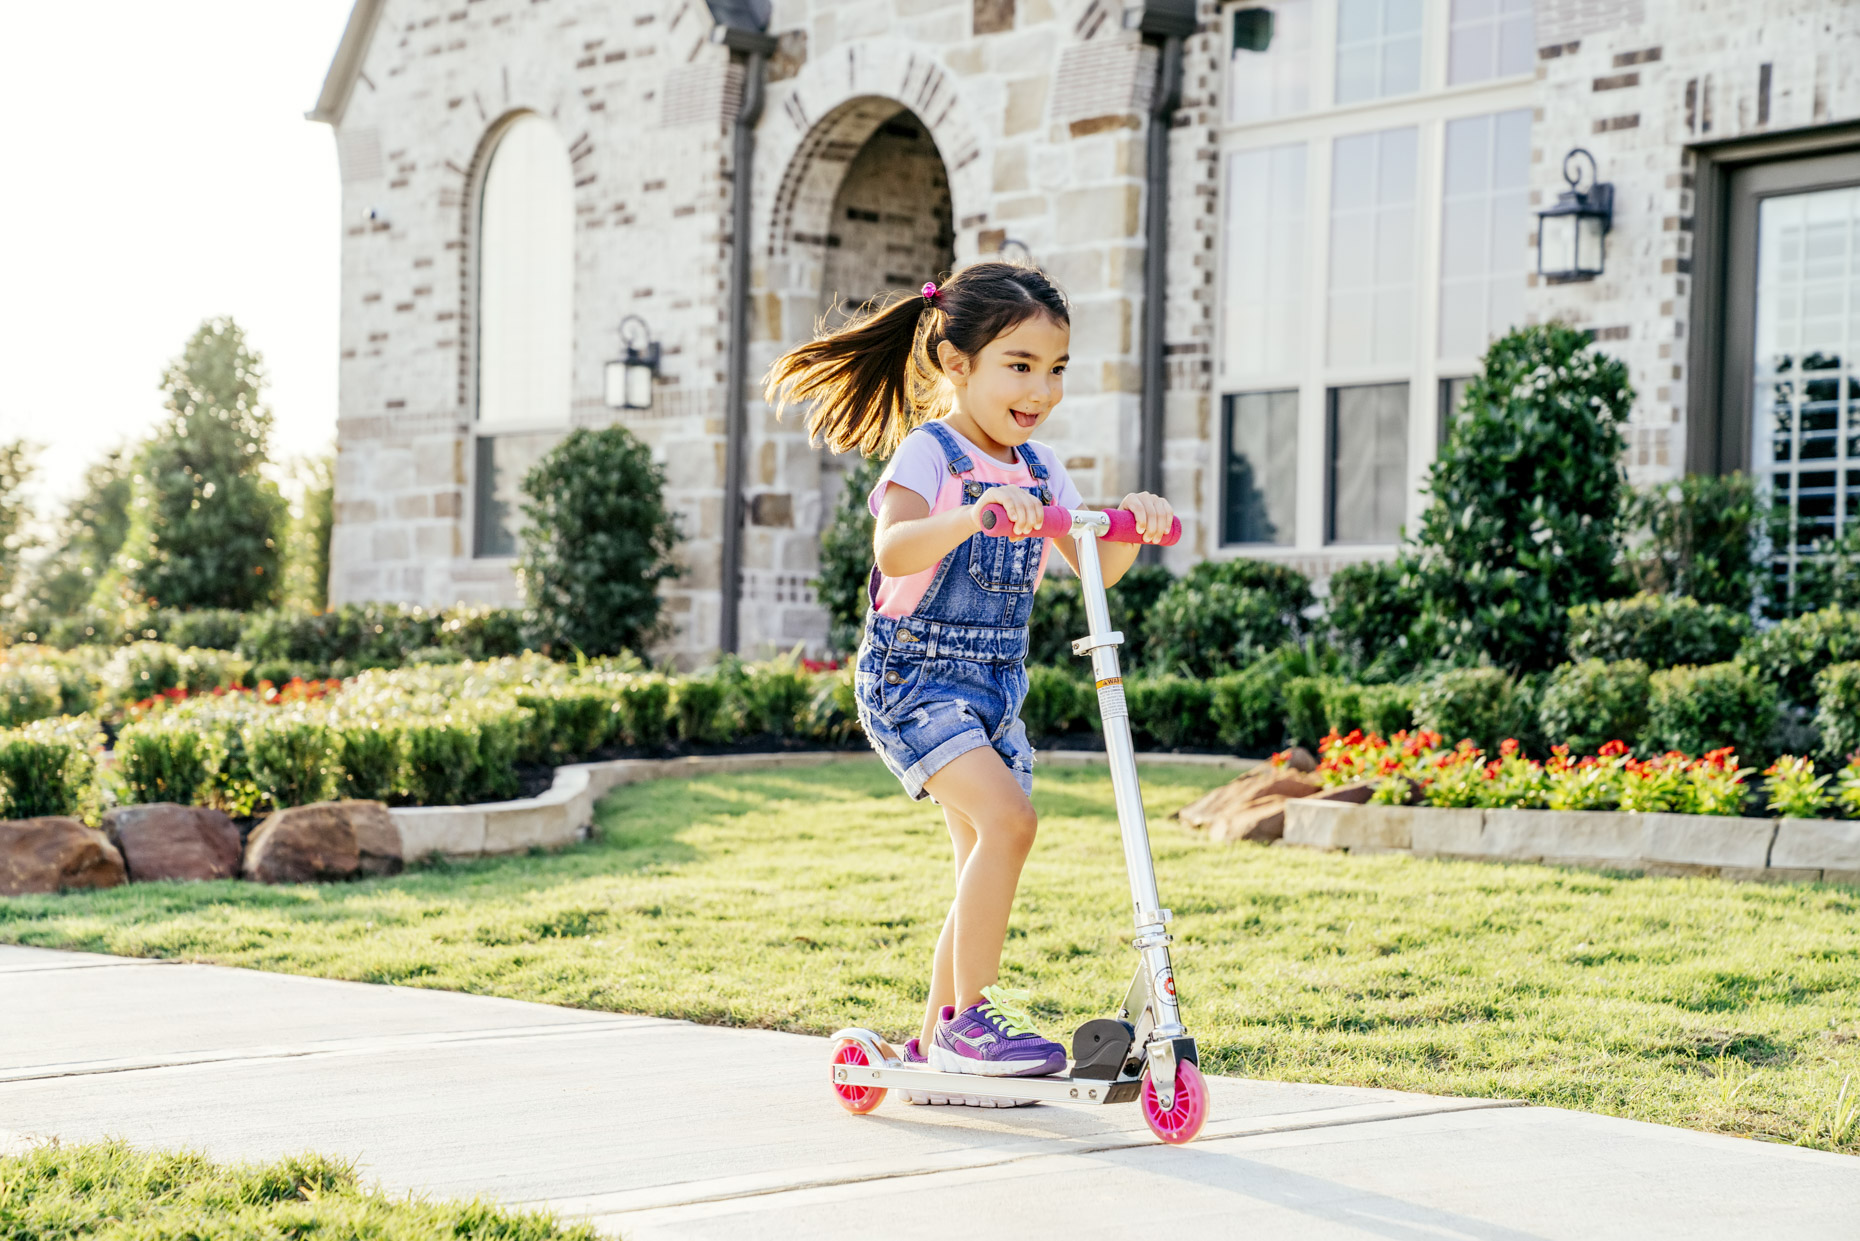 Girl riding scooter on sidewalk in front of house